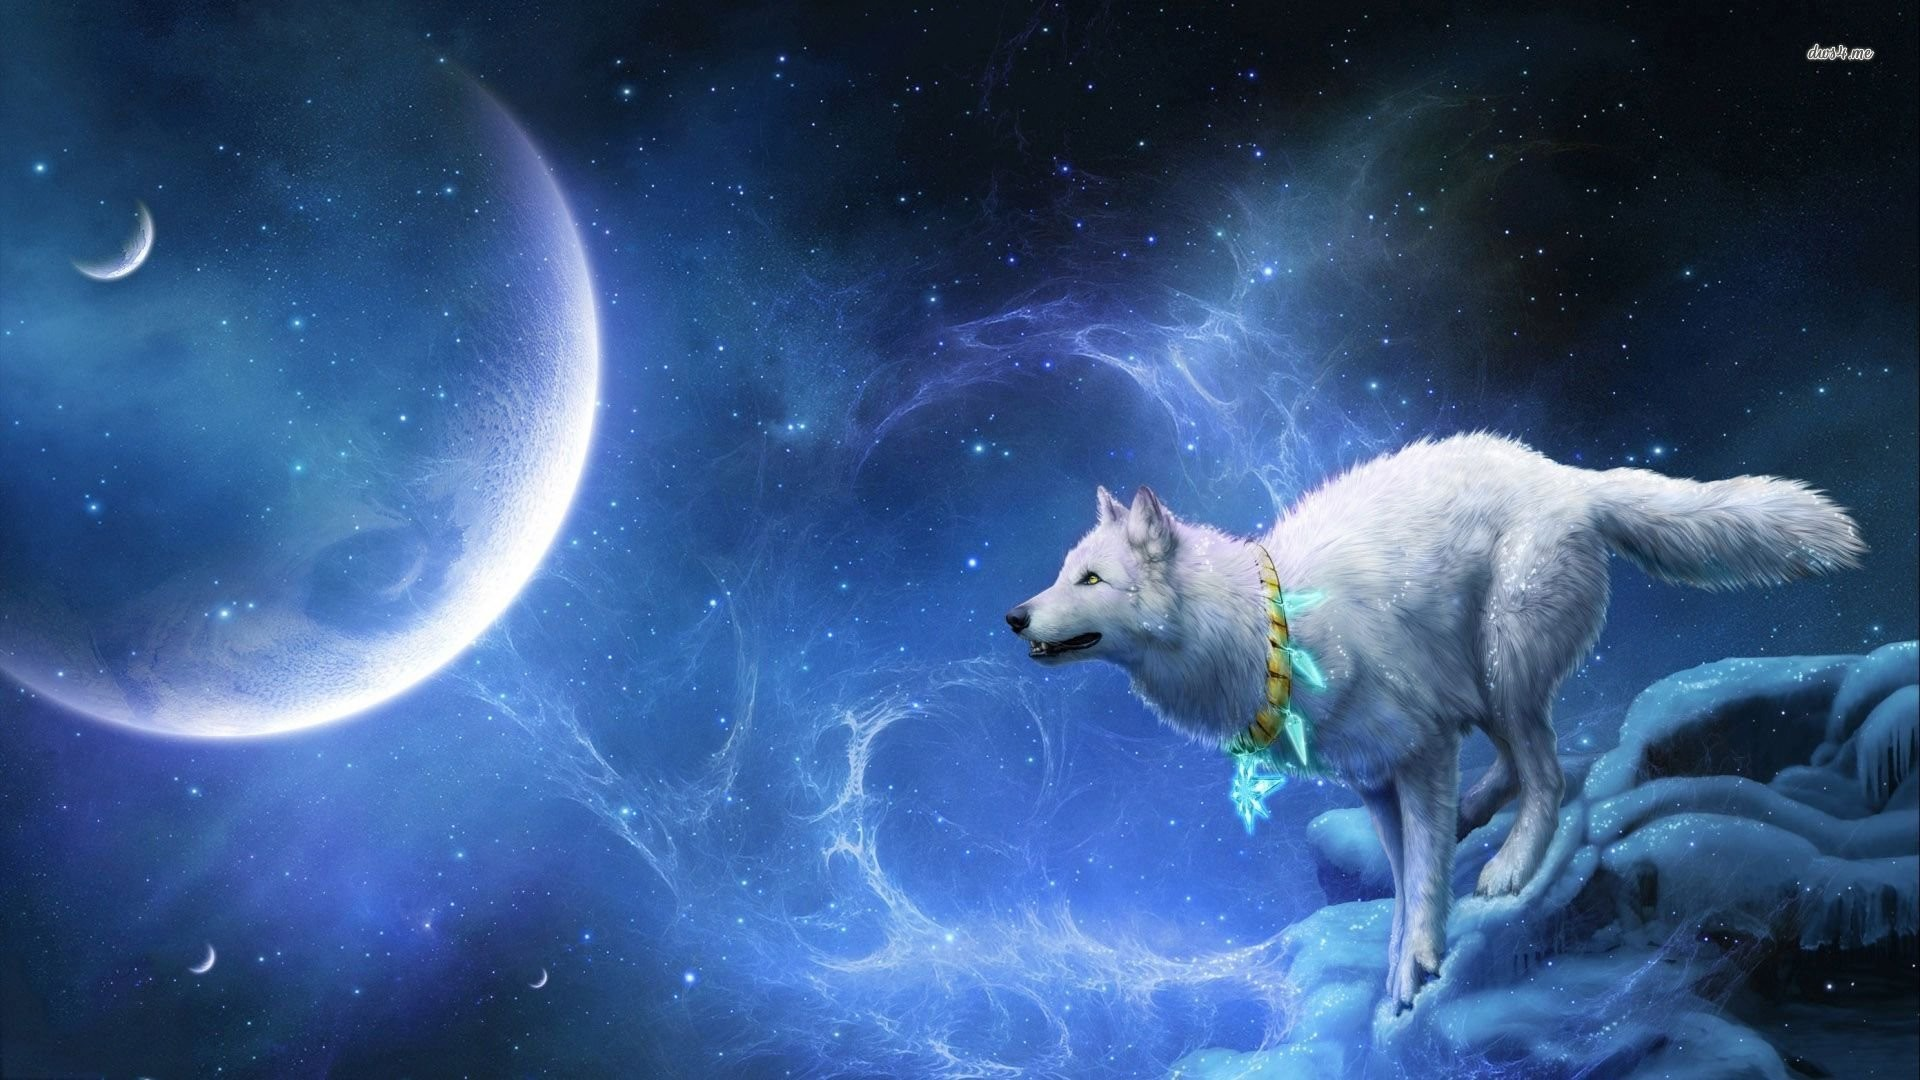 1920x1080 Free howling wolf moon iPhone wallpaper Howling Wolf Wallpapers - Wallpaper  Cave